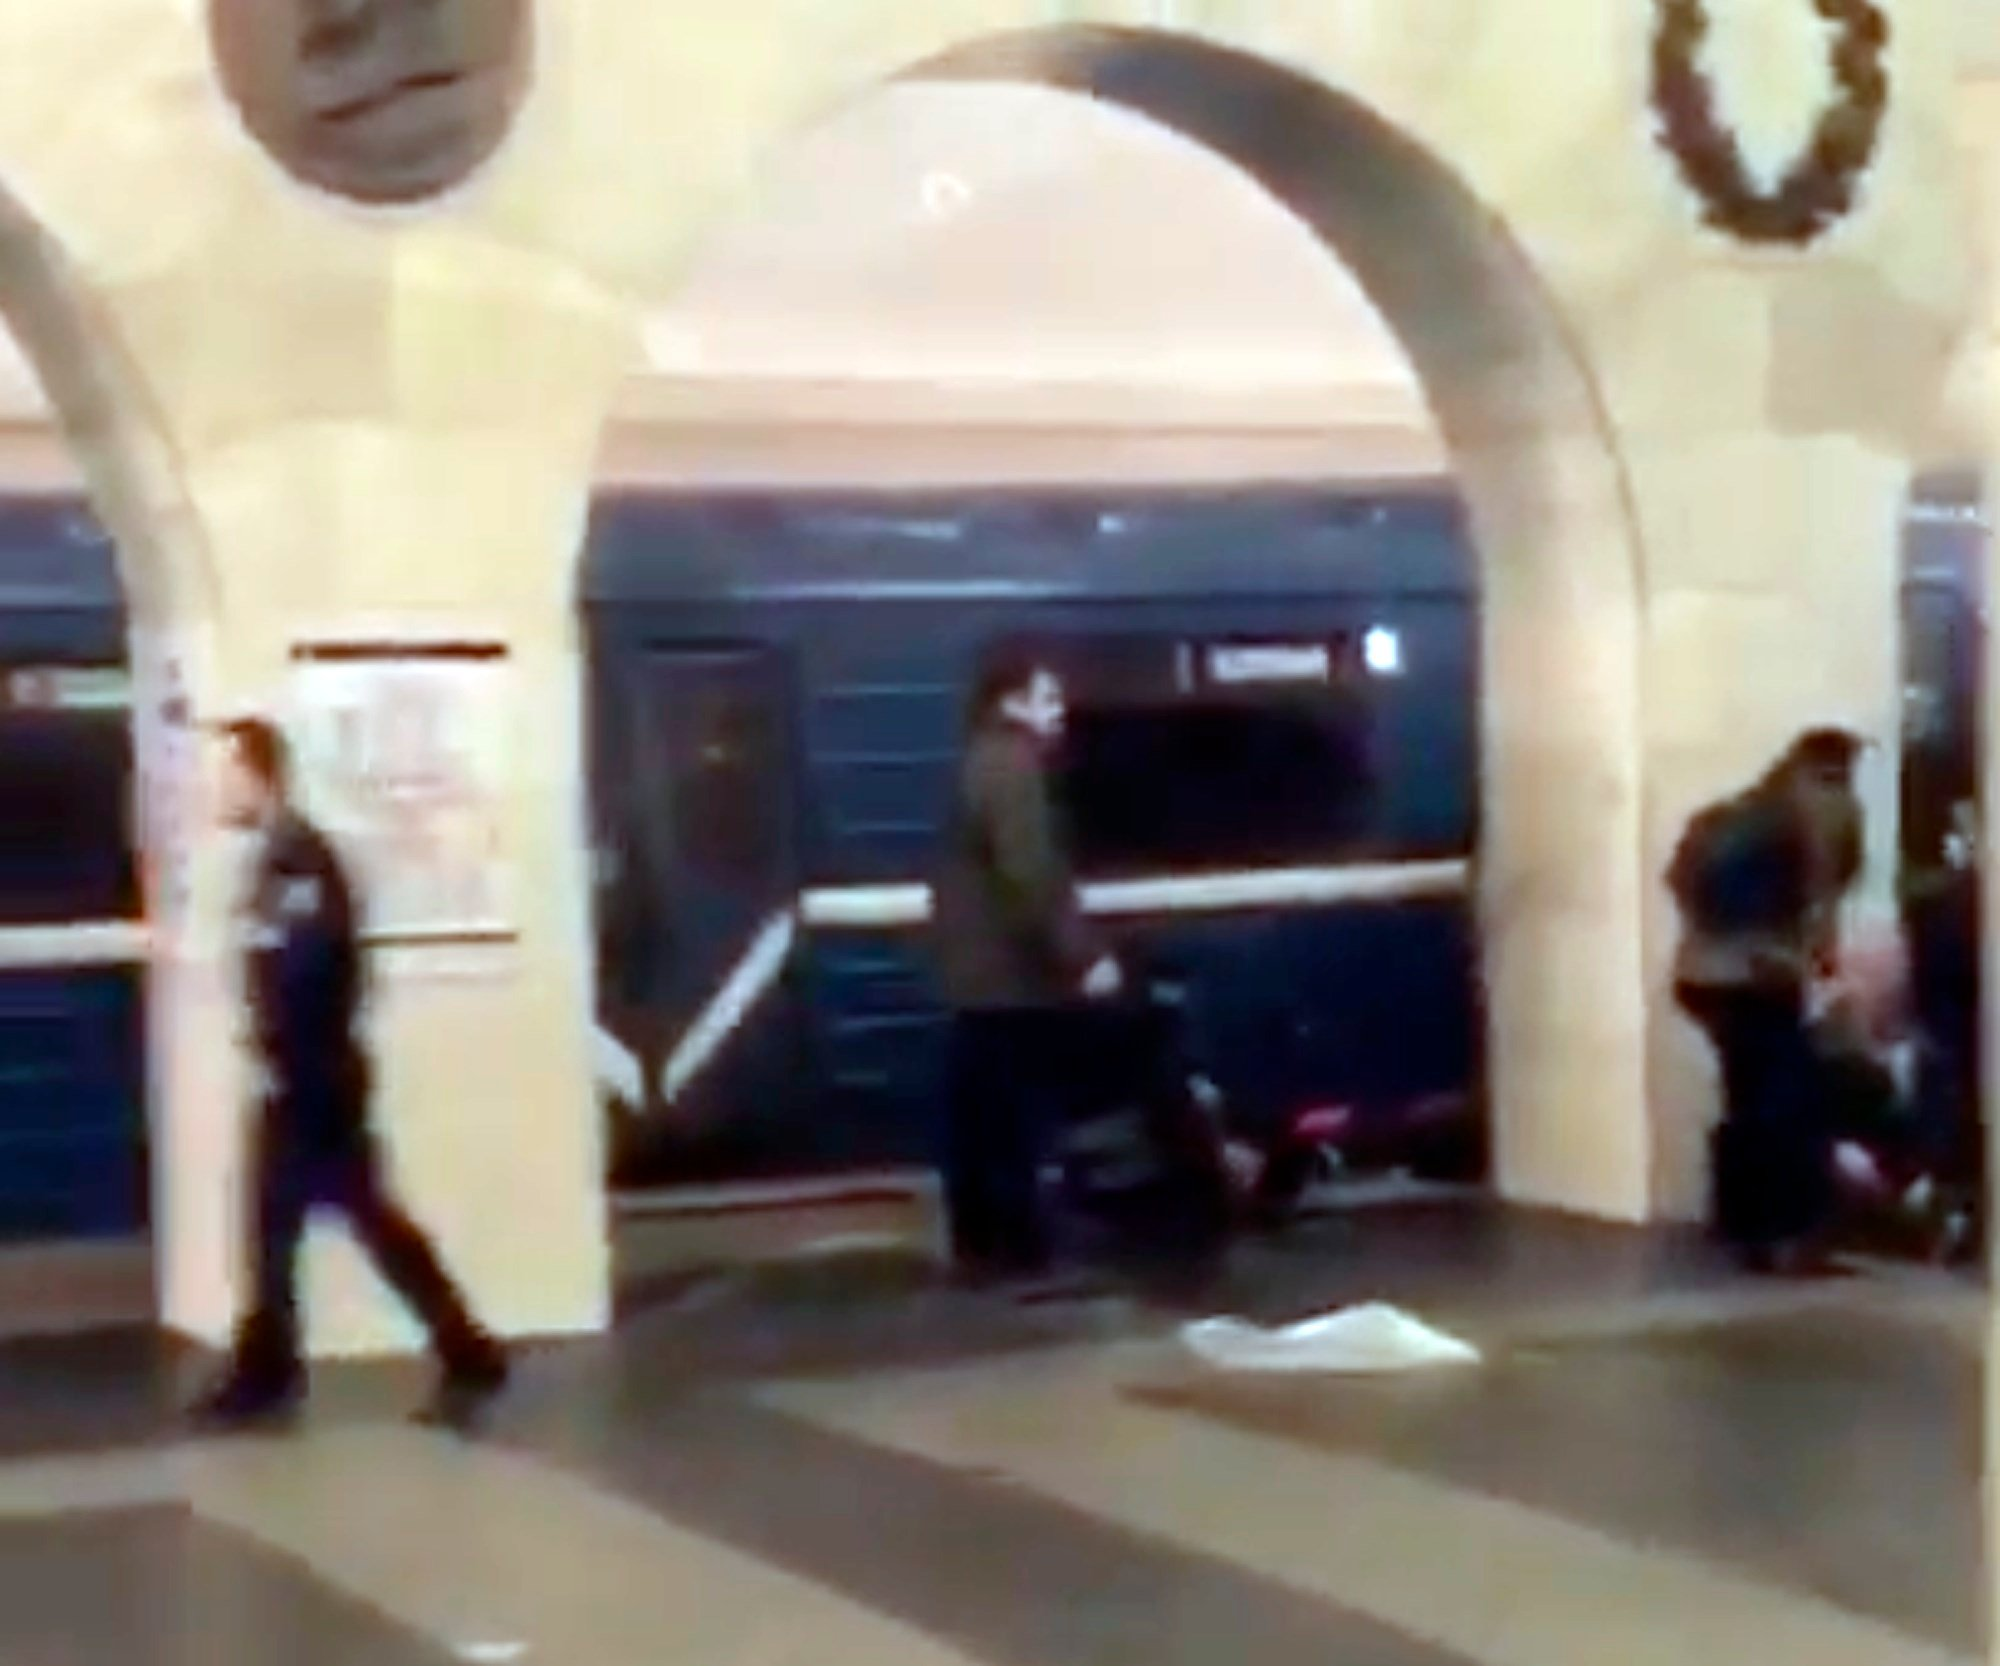 In this grab taken from AP video, Russian police officer, left, and people walk past the damaged train at the Tekhnologichesky Institut subway station in St.Petersburg, Russia, Monday, April 3, 2017. (AP video via AP)